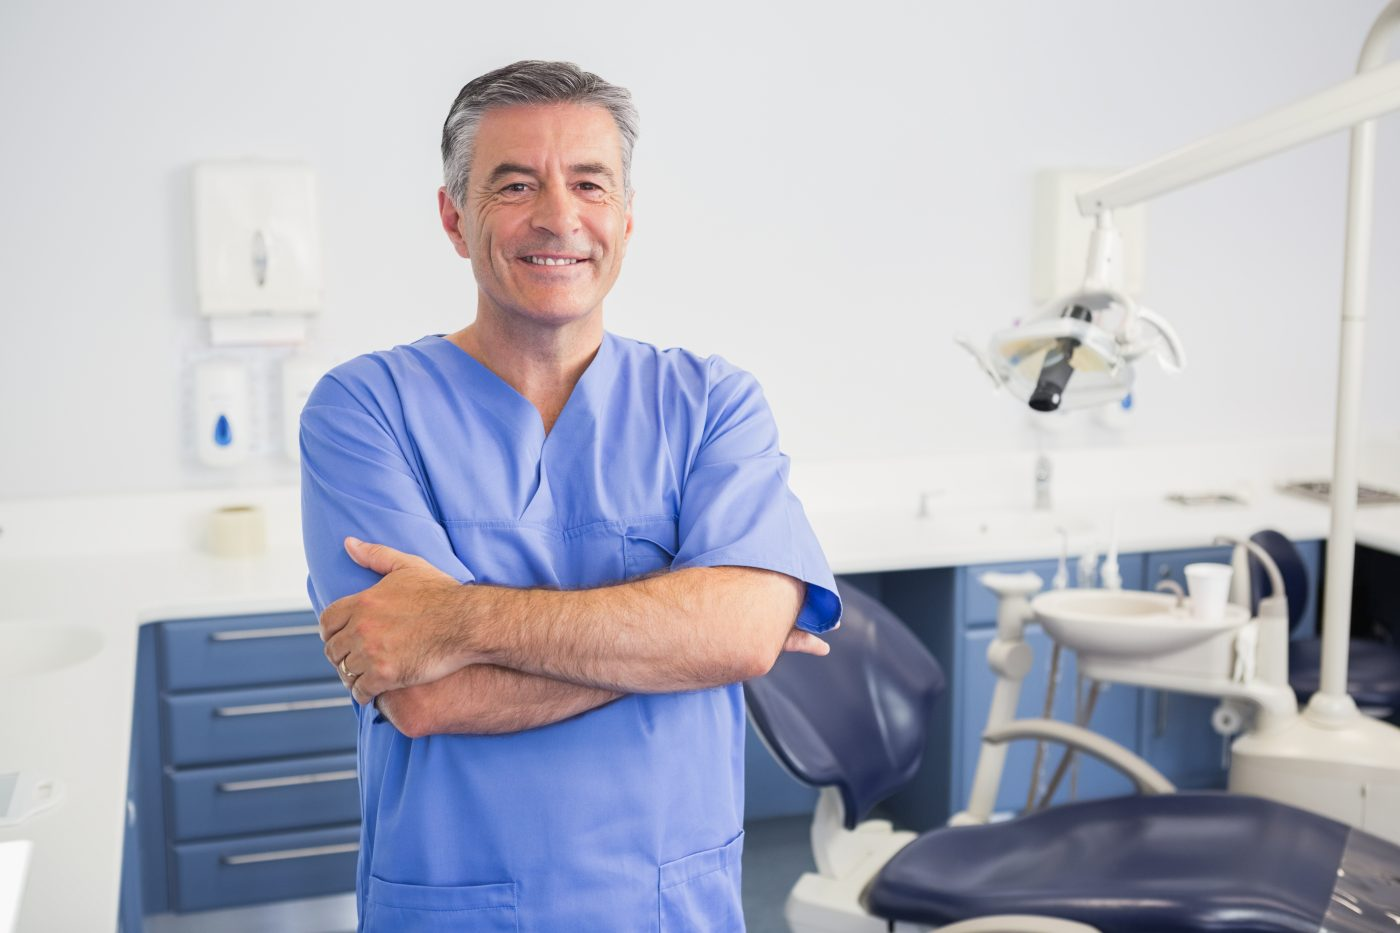 male dentist smiling in front of dental patient room wearing blue scrubs